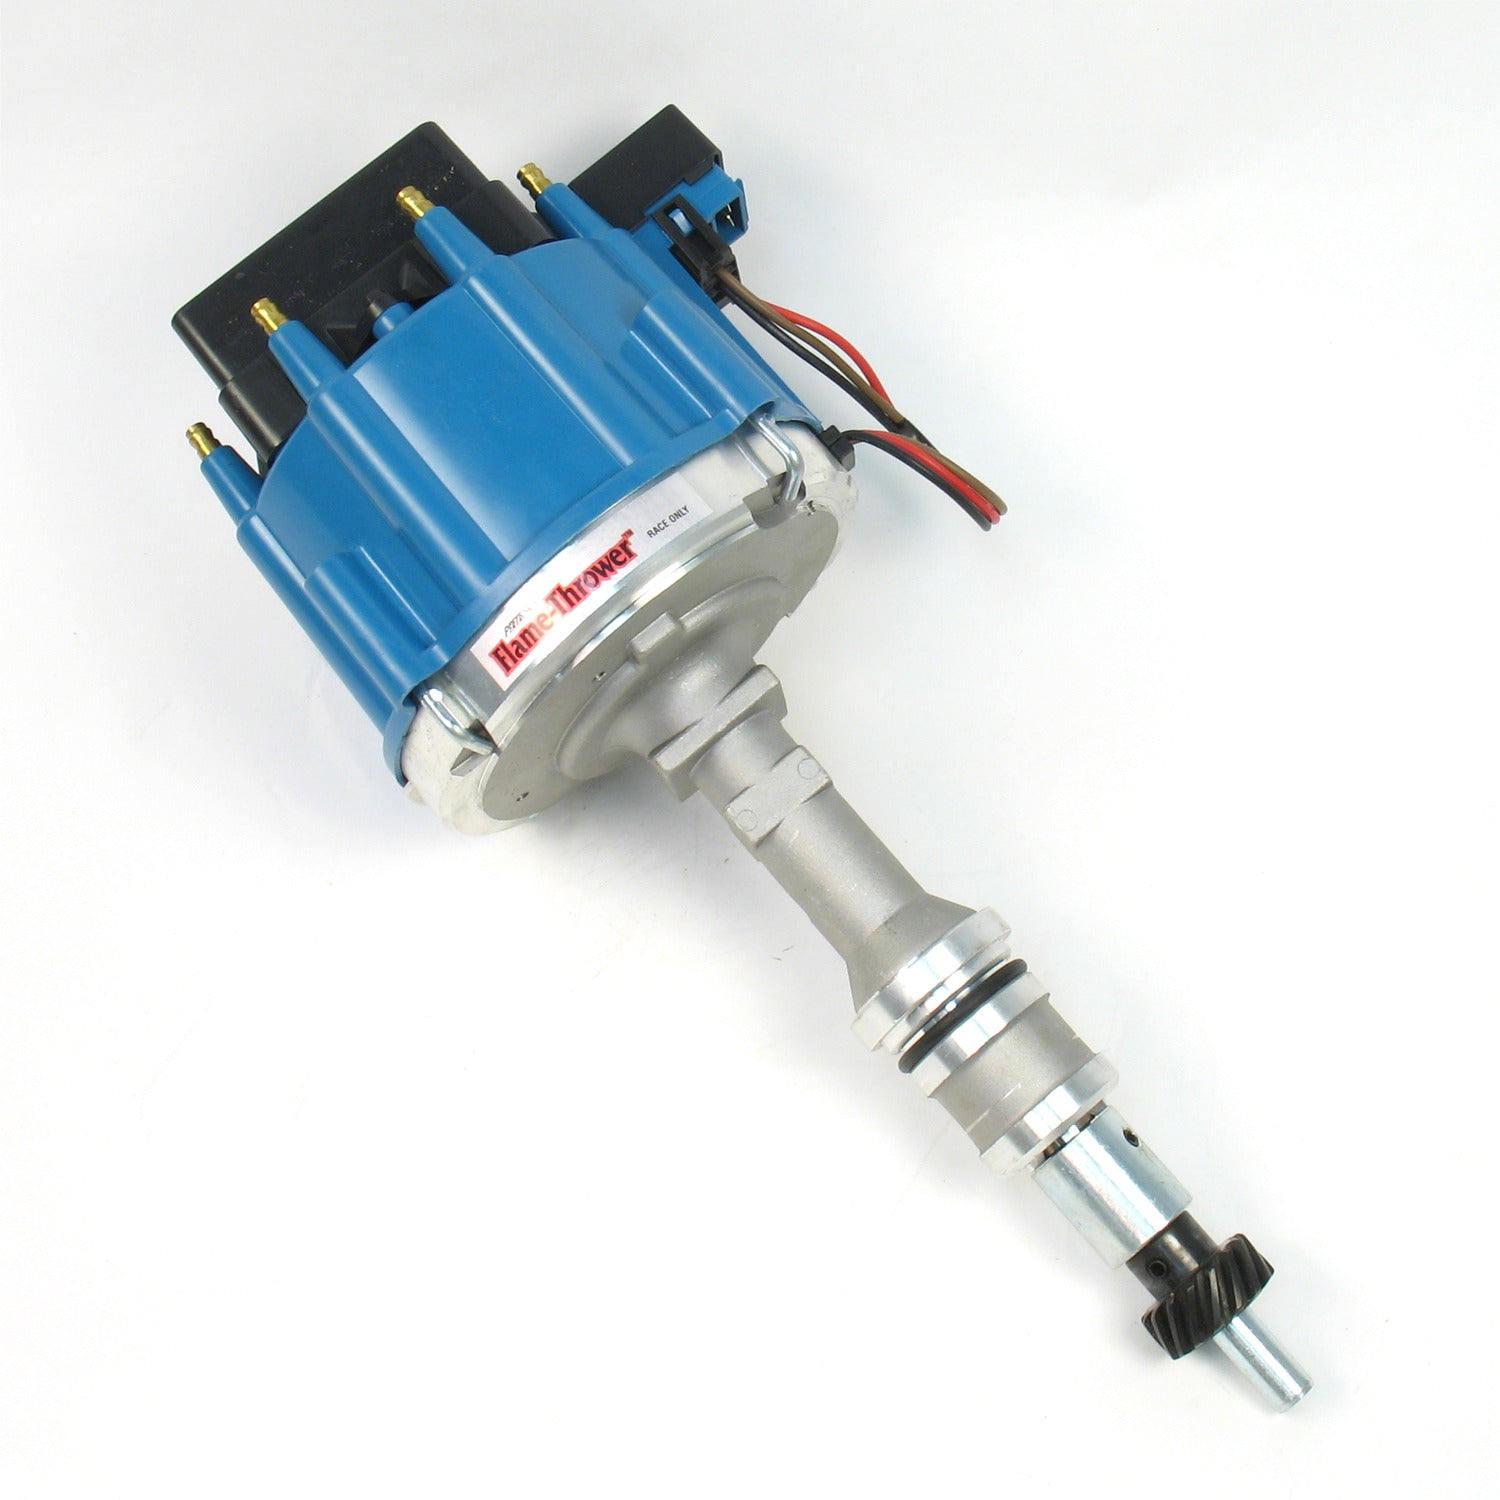 PerTronix D71372 Flame-Thrower Race Distributor HEI III Ford Small Block Blue Cap with multiple sparks and an adjustable digital rev limiter